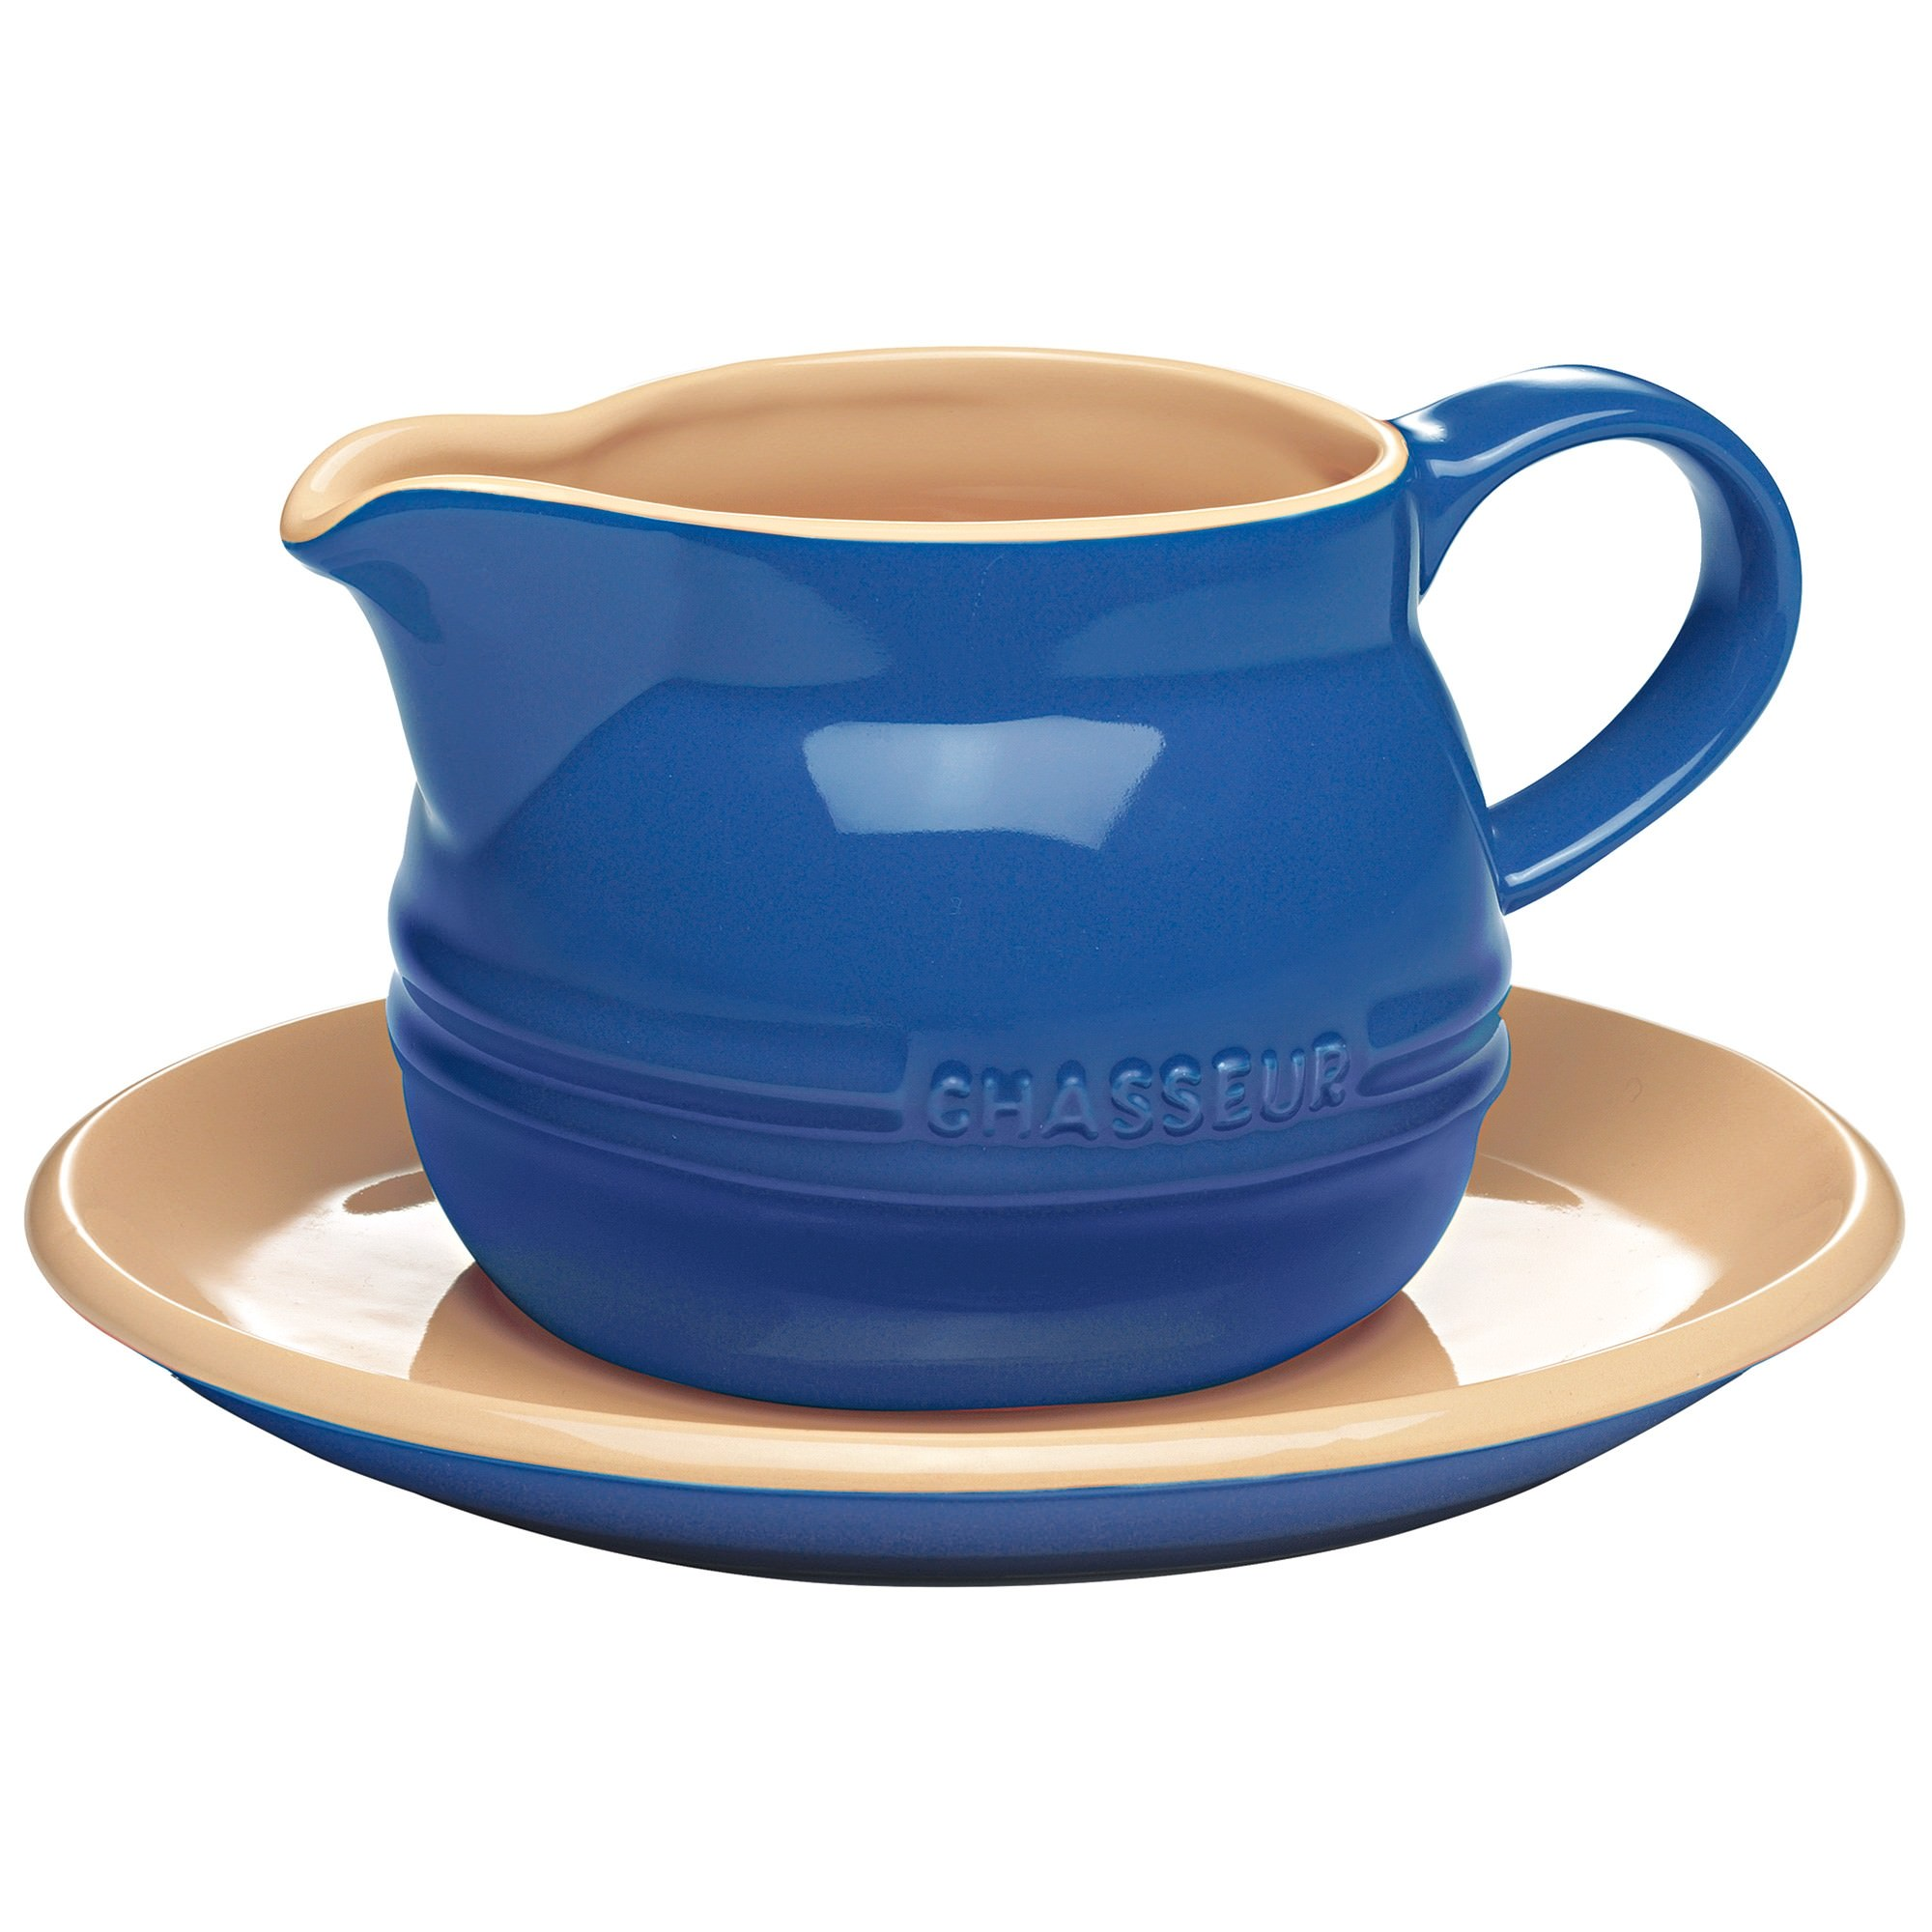 Chasseur La Cuisson 450ml Gravy Boat with Saucer - Blue